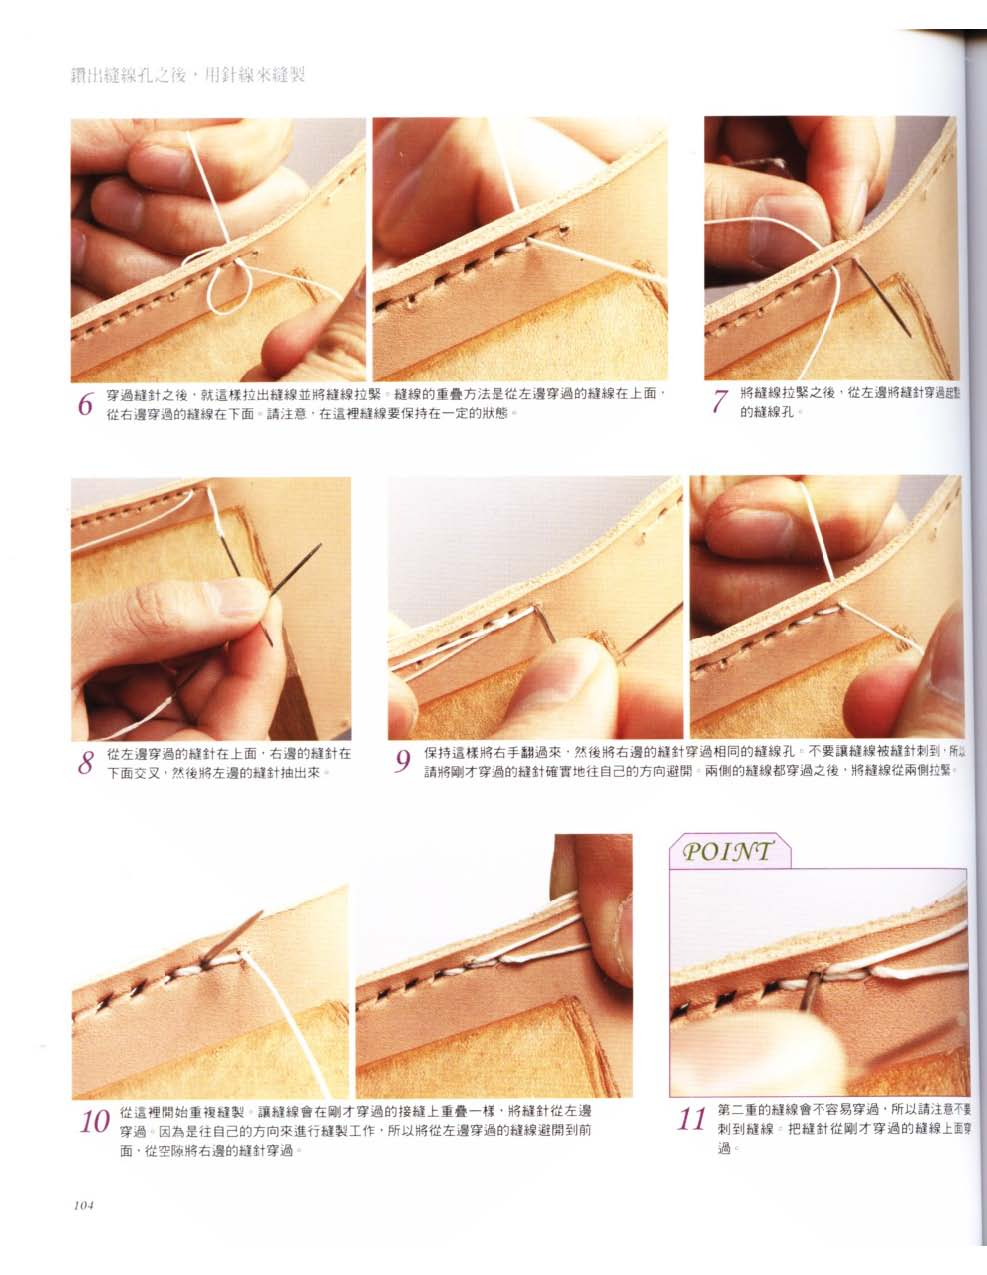 how to sew leather with saddle stitiching (4)